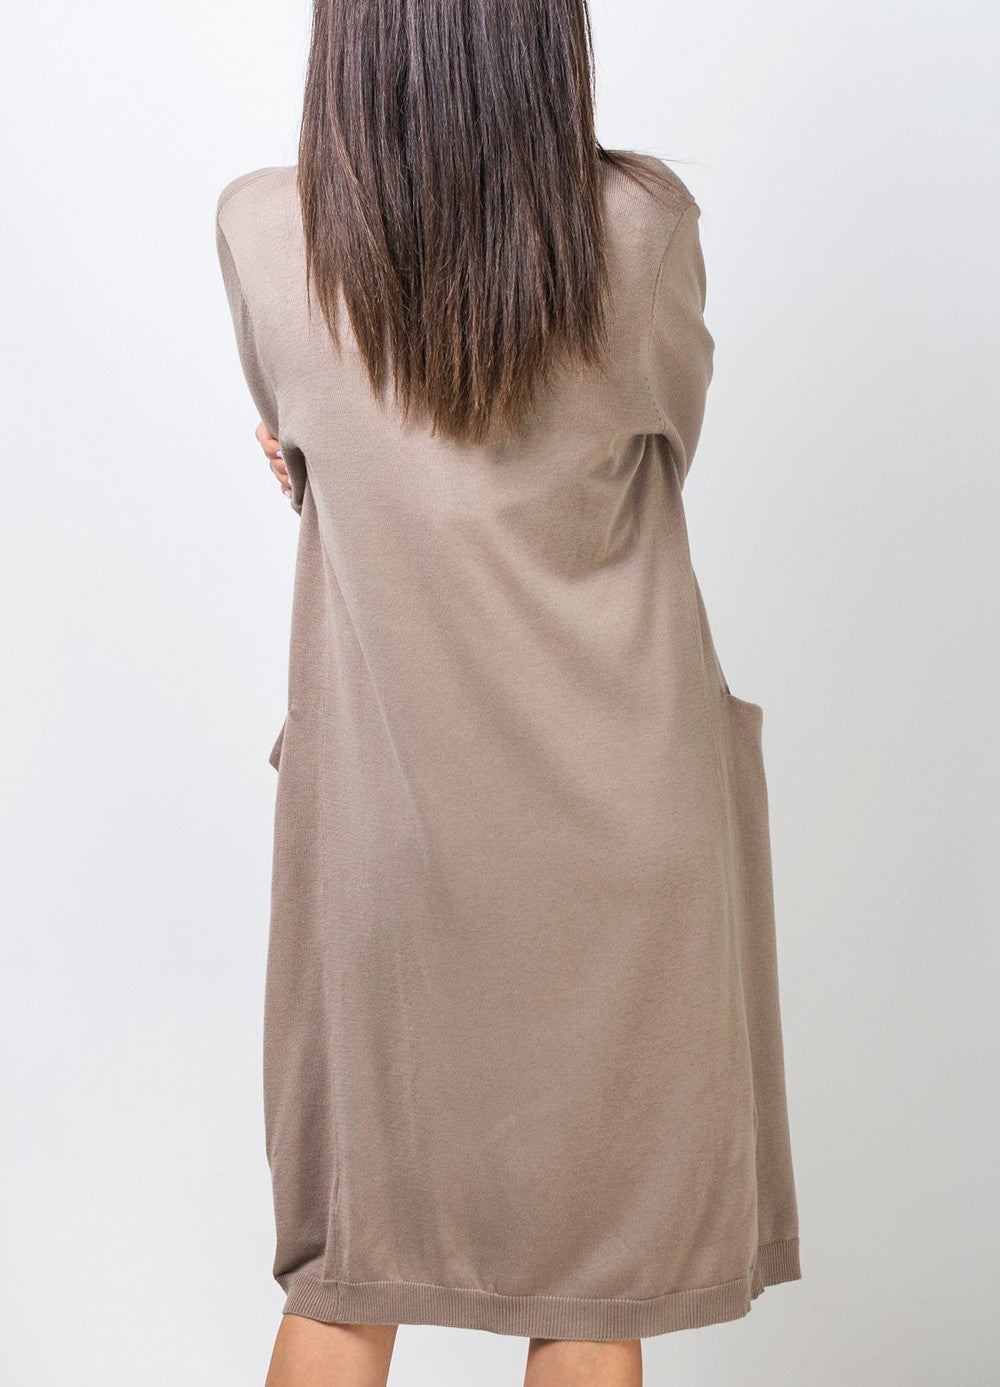 Long Sand Color Cardigan